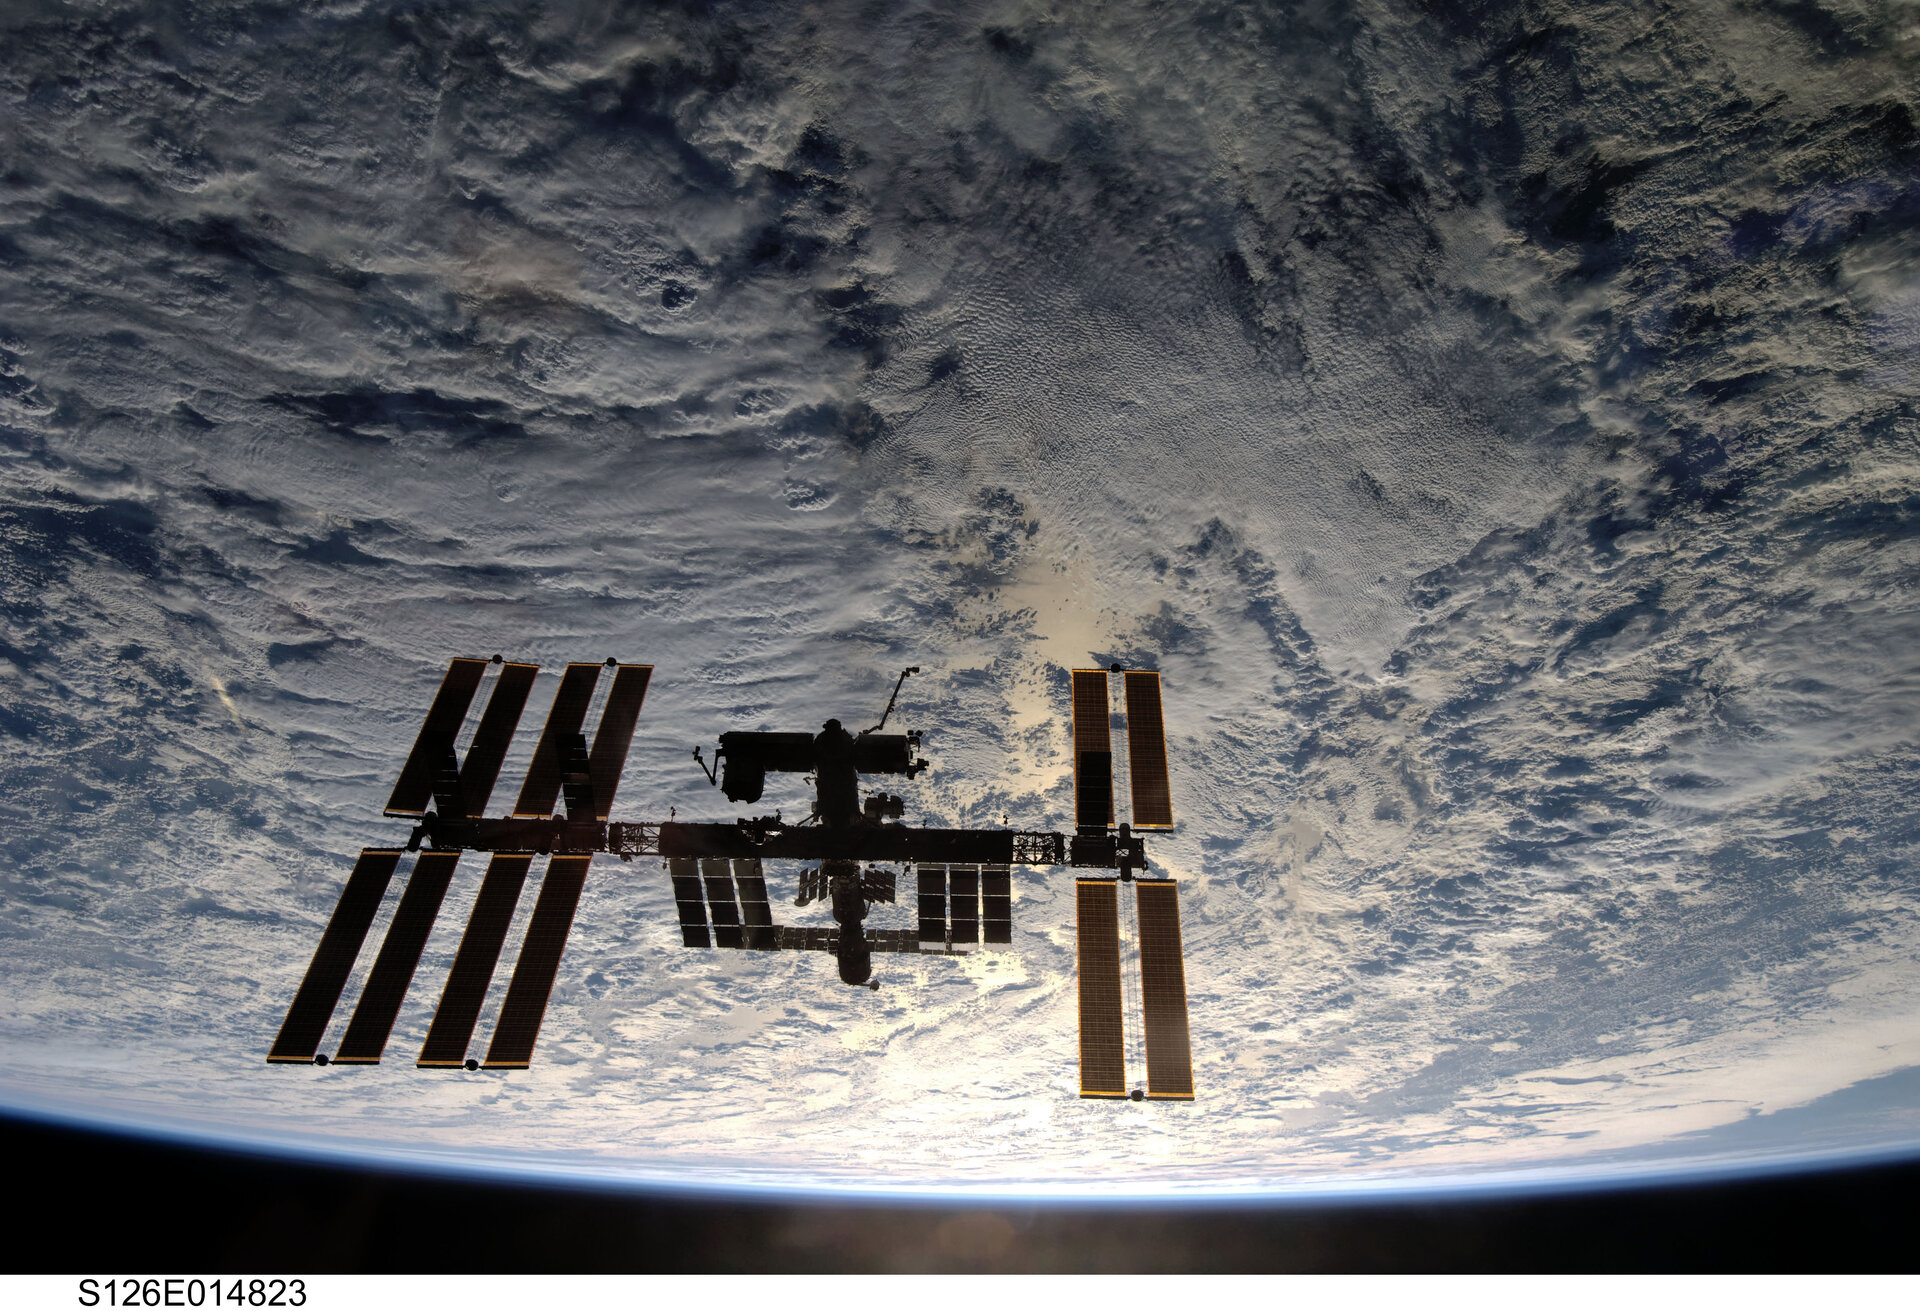 ISS viewed from Space Shuttle Endeavour